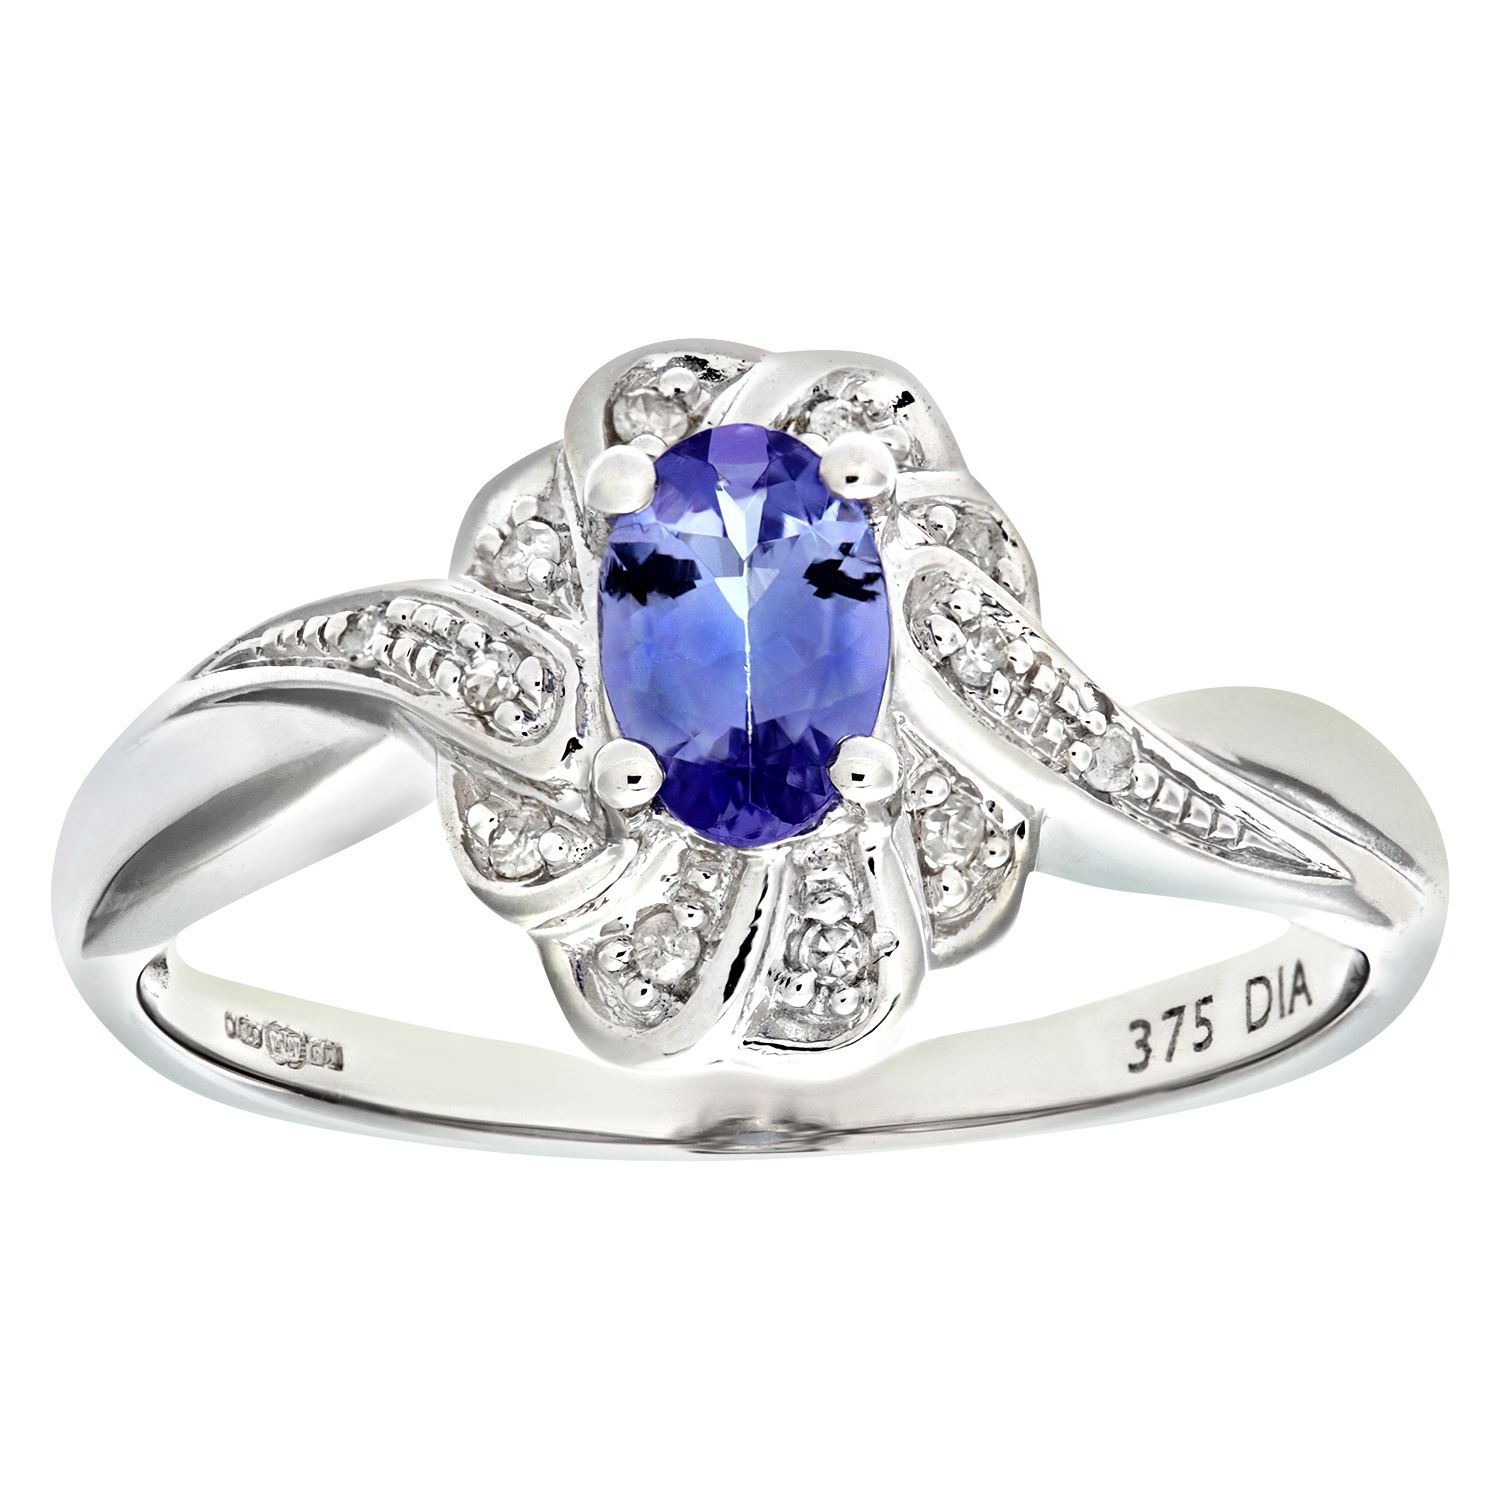 gemstone tanzanite size real sterling jewelry ring wear us sunrisejewellers party silver pin